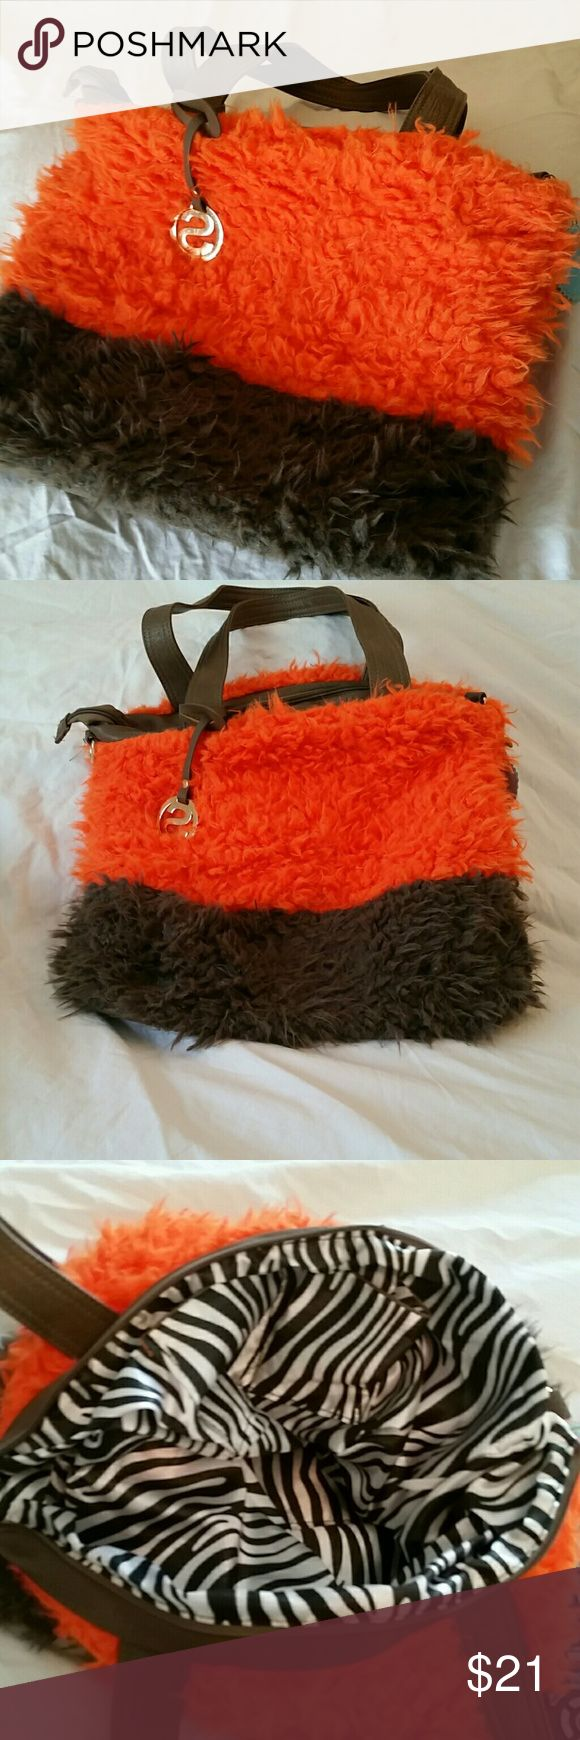 """Super Fluffy Handbag Your gonna love this beautiful fluffy handbag.   It has a dark tan and bright orange soft and fluffy material to it  16"""" across and 14"""" length, the strap has a 10"""" drop. Zippered Sarit Bags Totes"""